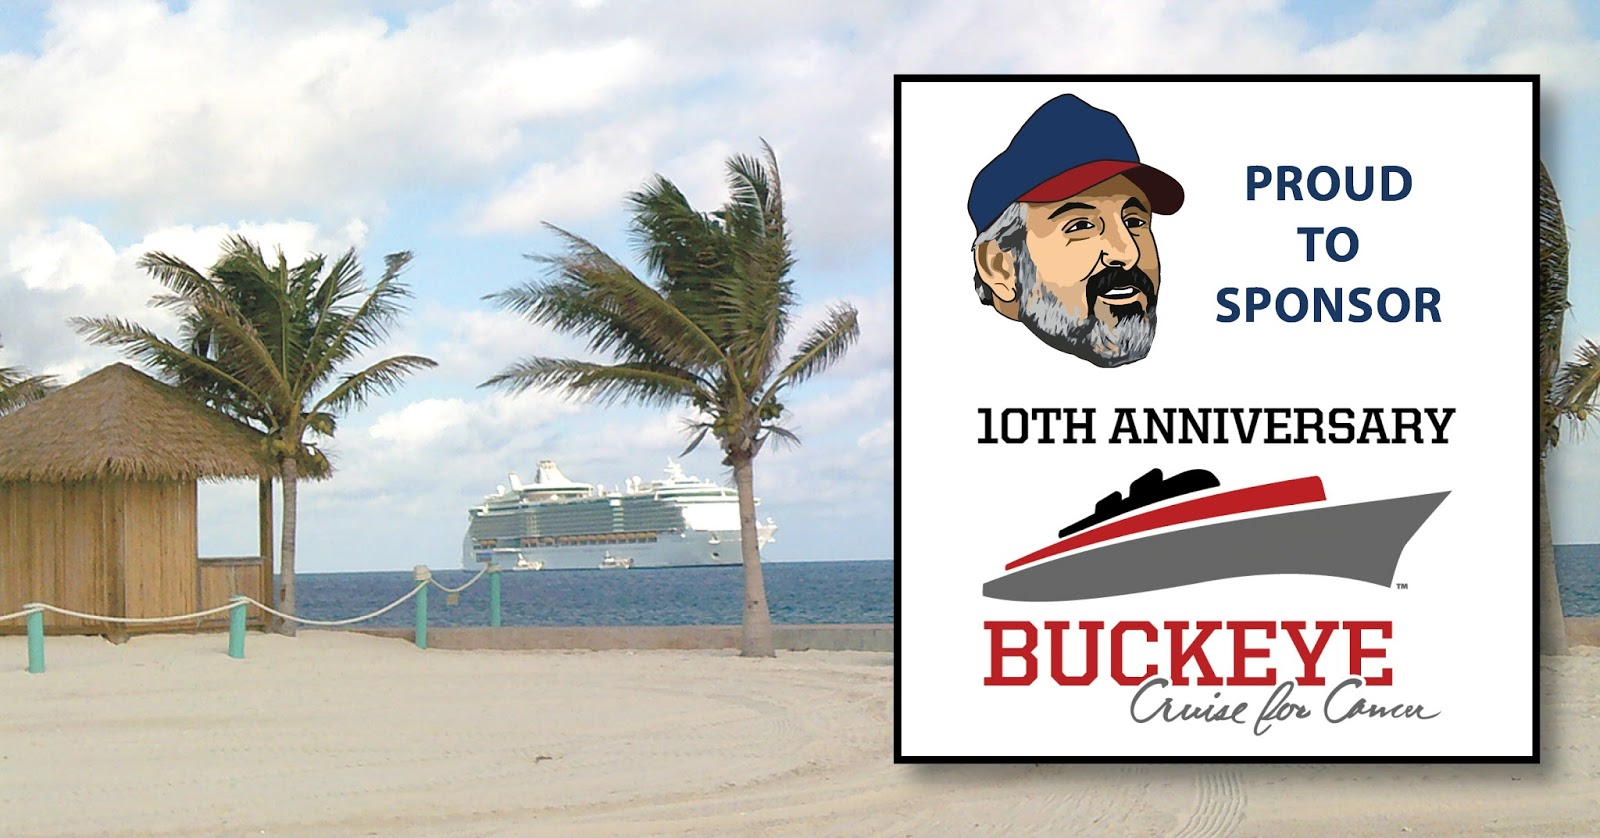 The Basement Doctor Team Set Sail On The Buckeye Cruise For Cancer 2017